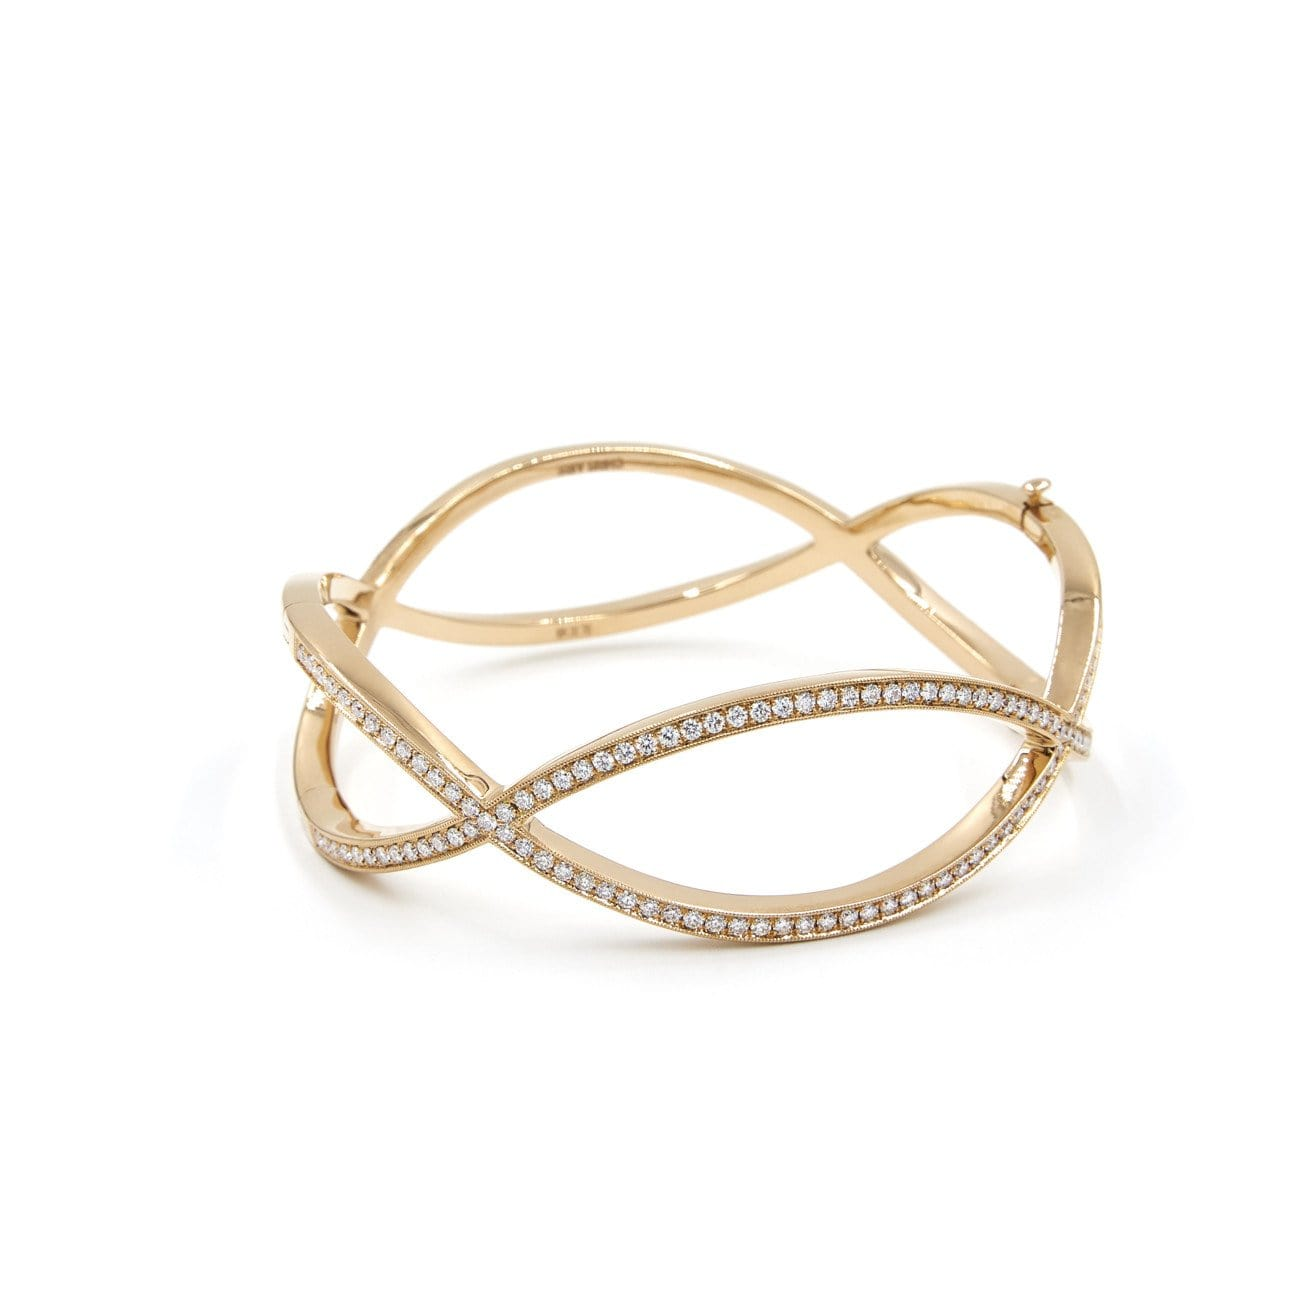 DIAMOND INFINITY BANGLE - Chris Aire Fine Jewelry & Timepieces